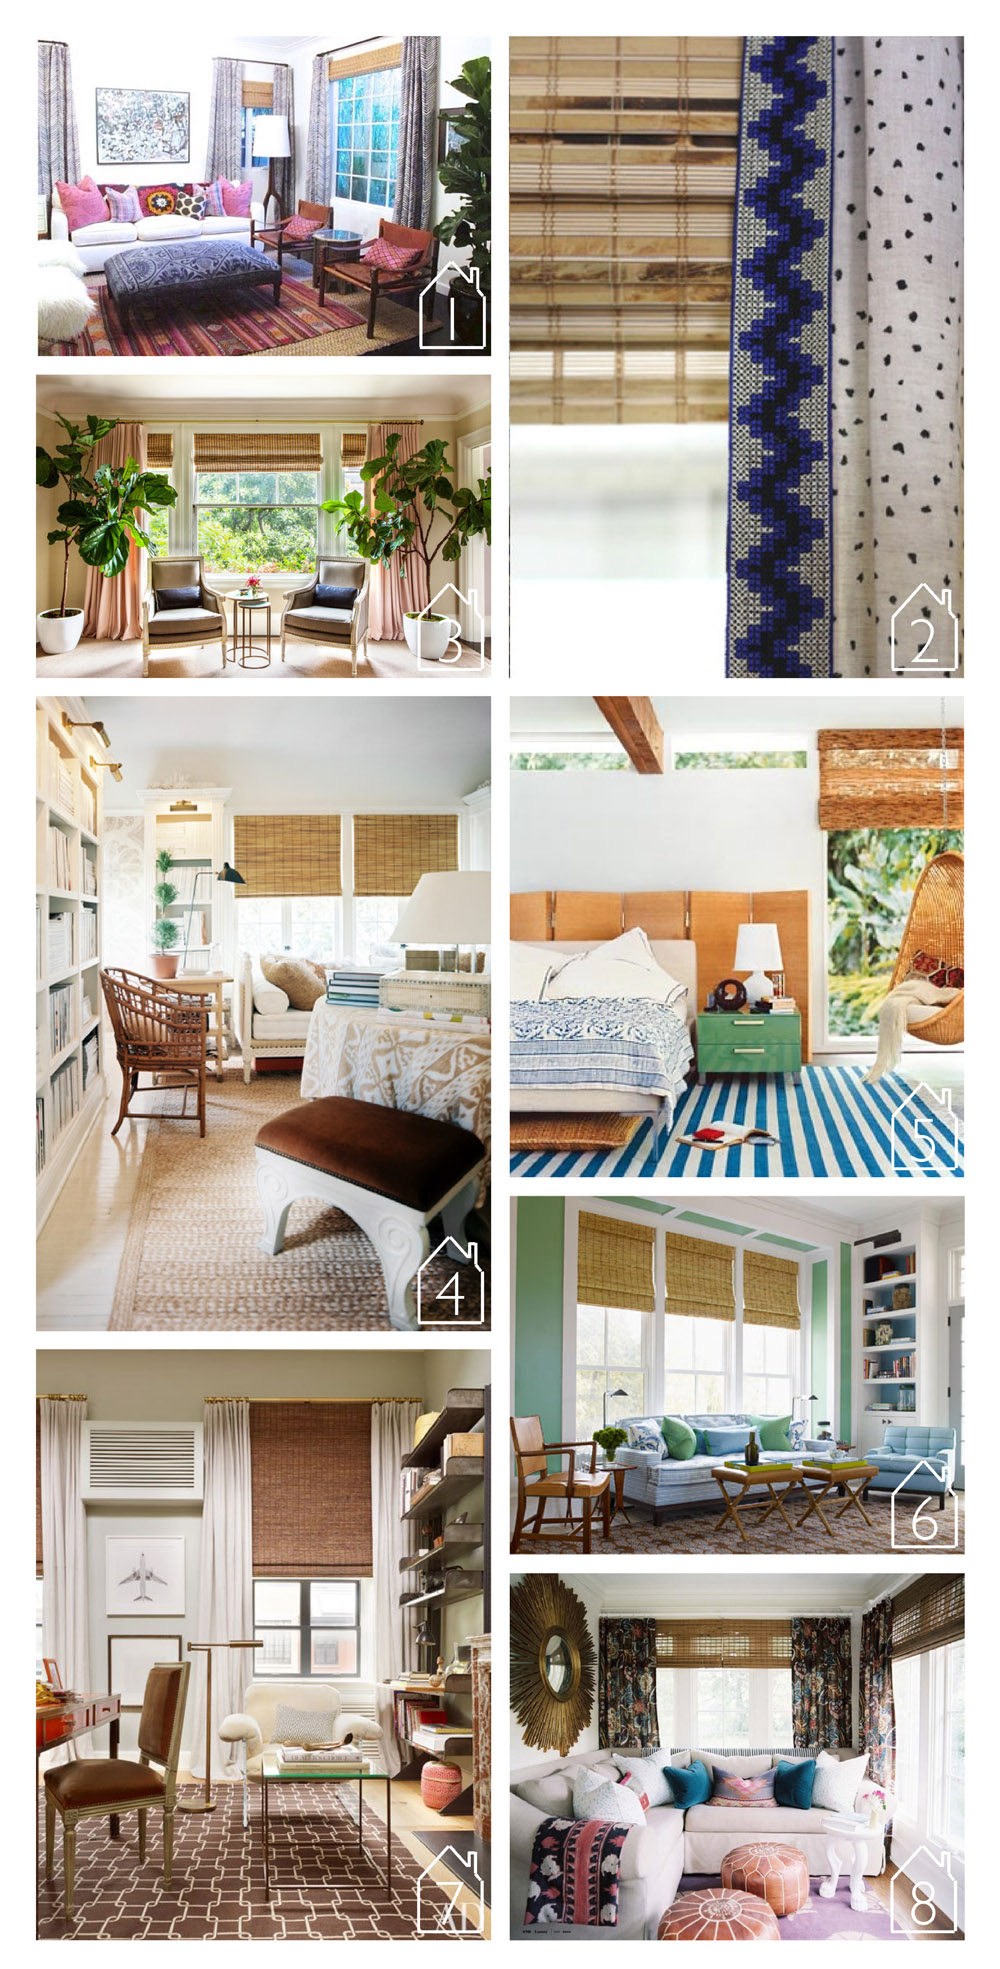 1.  Shea McGee Design   2.source unknown  3. via  Lonny  design by  Chloe Warner   4. via  Lonny  design by  Mark D. Sikes   5. home of Ione Skye featured in  Domino   6. via  House Beautiful  design by  Steven Gambrel   7. Nate Berkus' duplex featured in  Architectural Digest   8. home of  Jamie Meares  featured in  Lonny